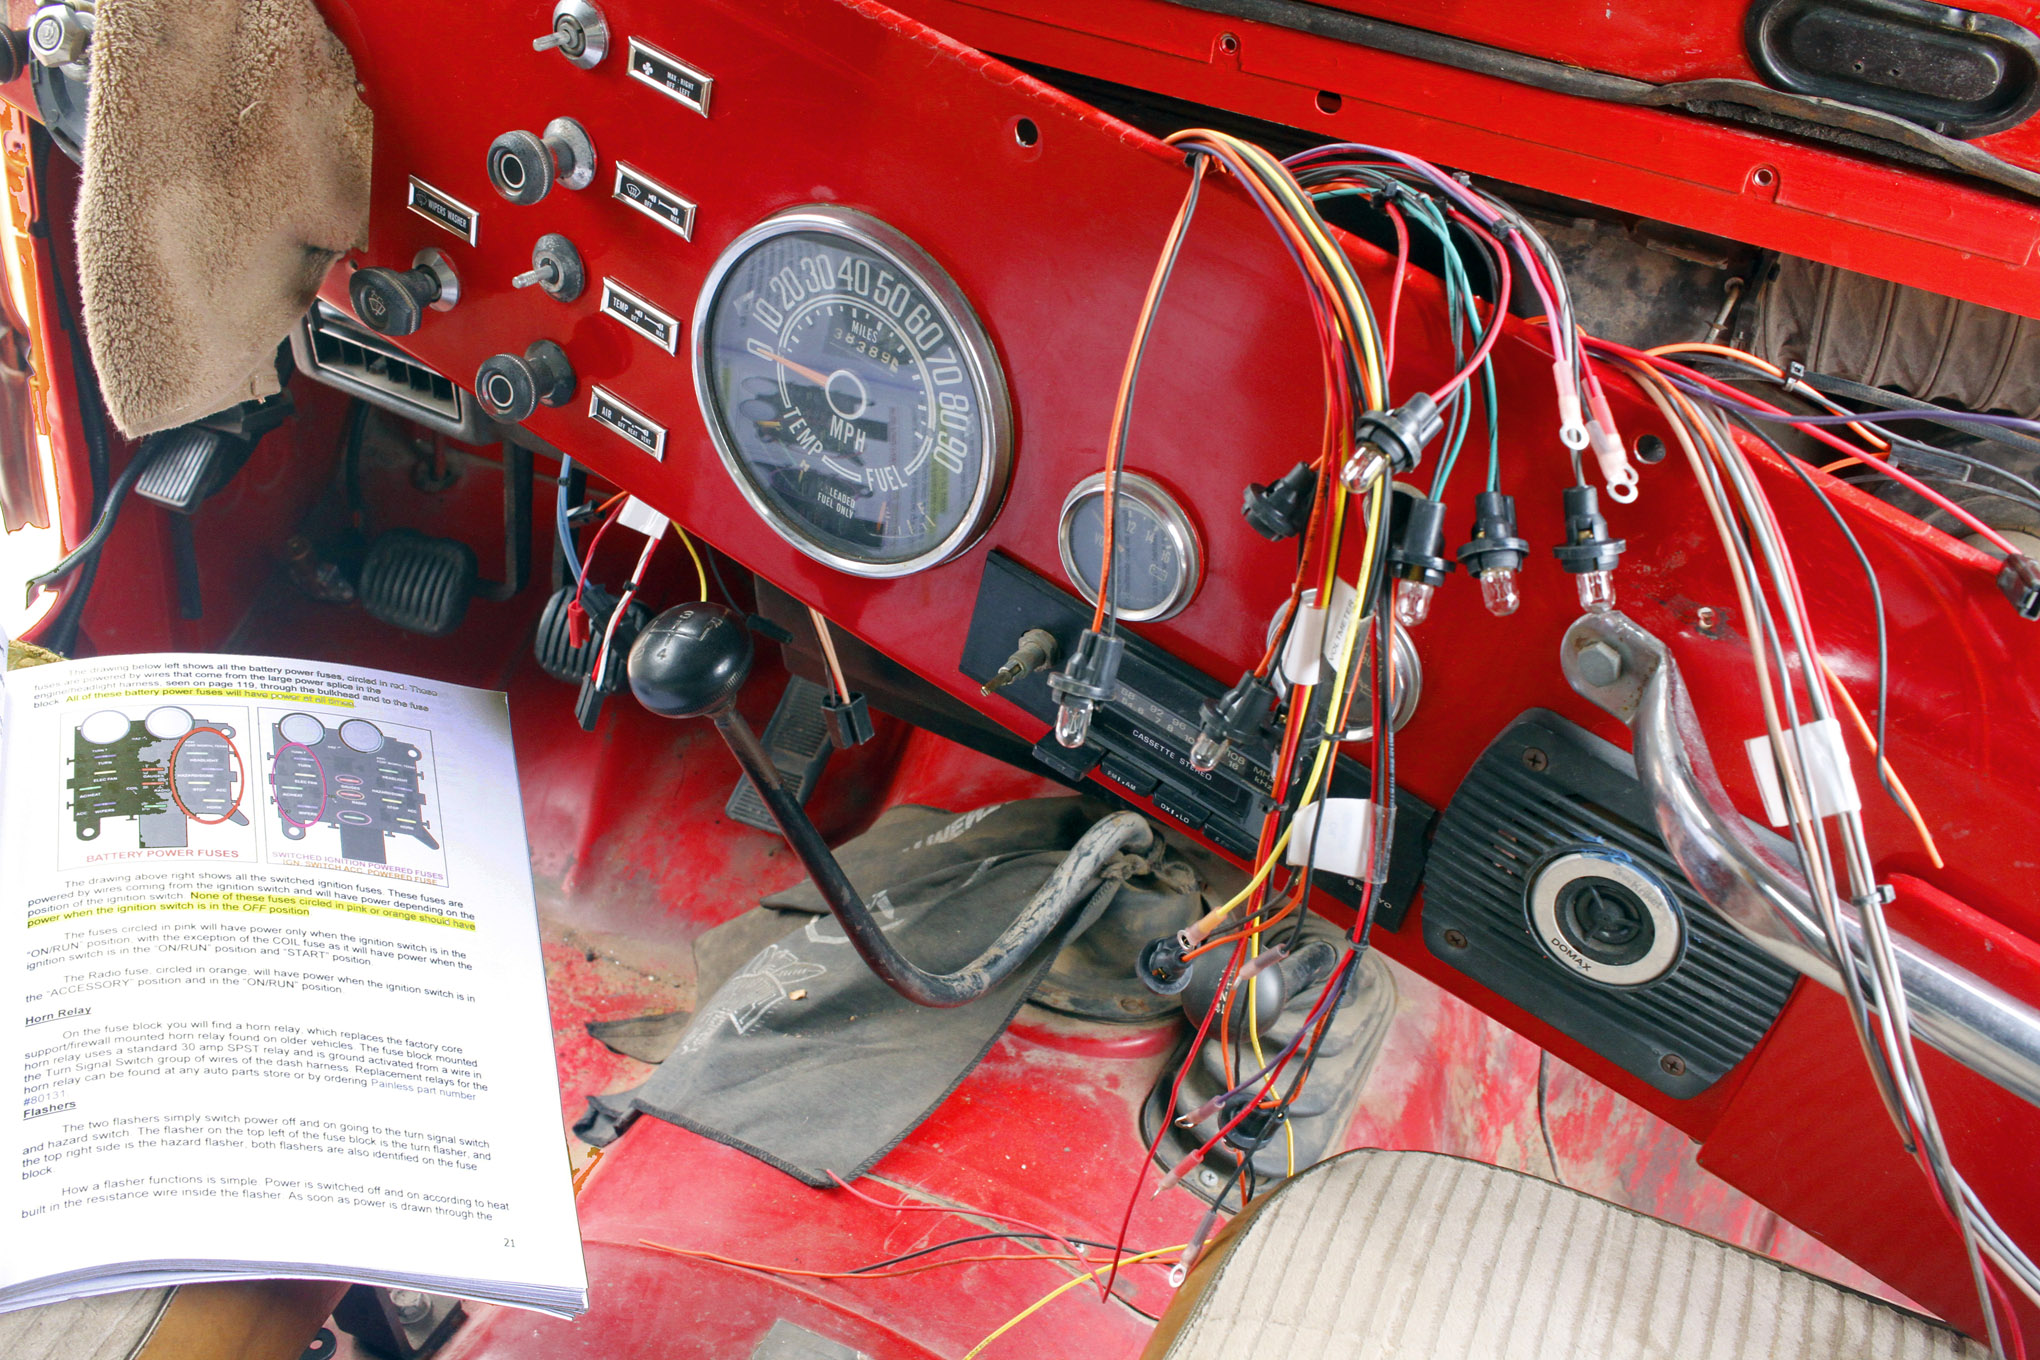 painless cj 5 rewire four wheeler network ford duraspark standalone wiring duraspark ignition and painless wiring harness help #14